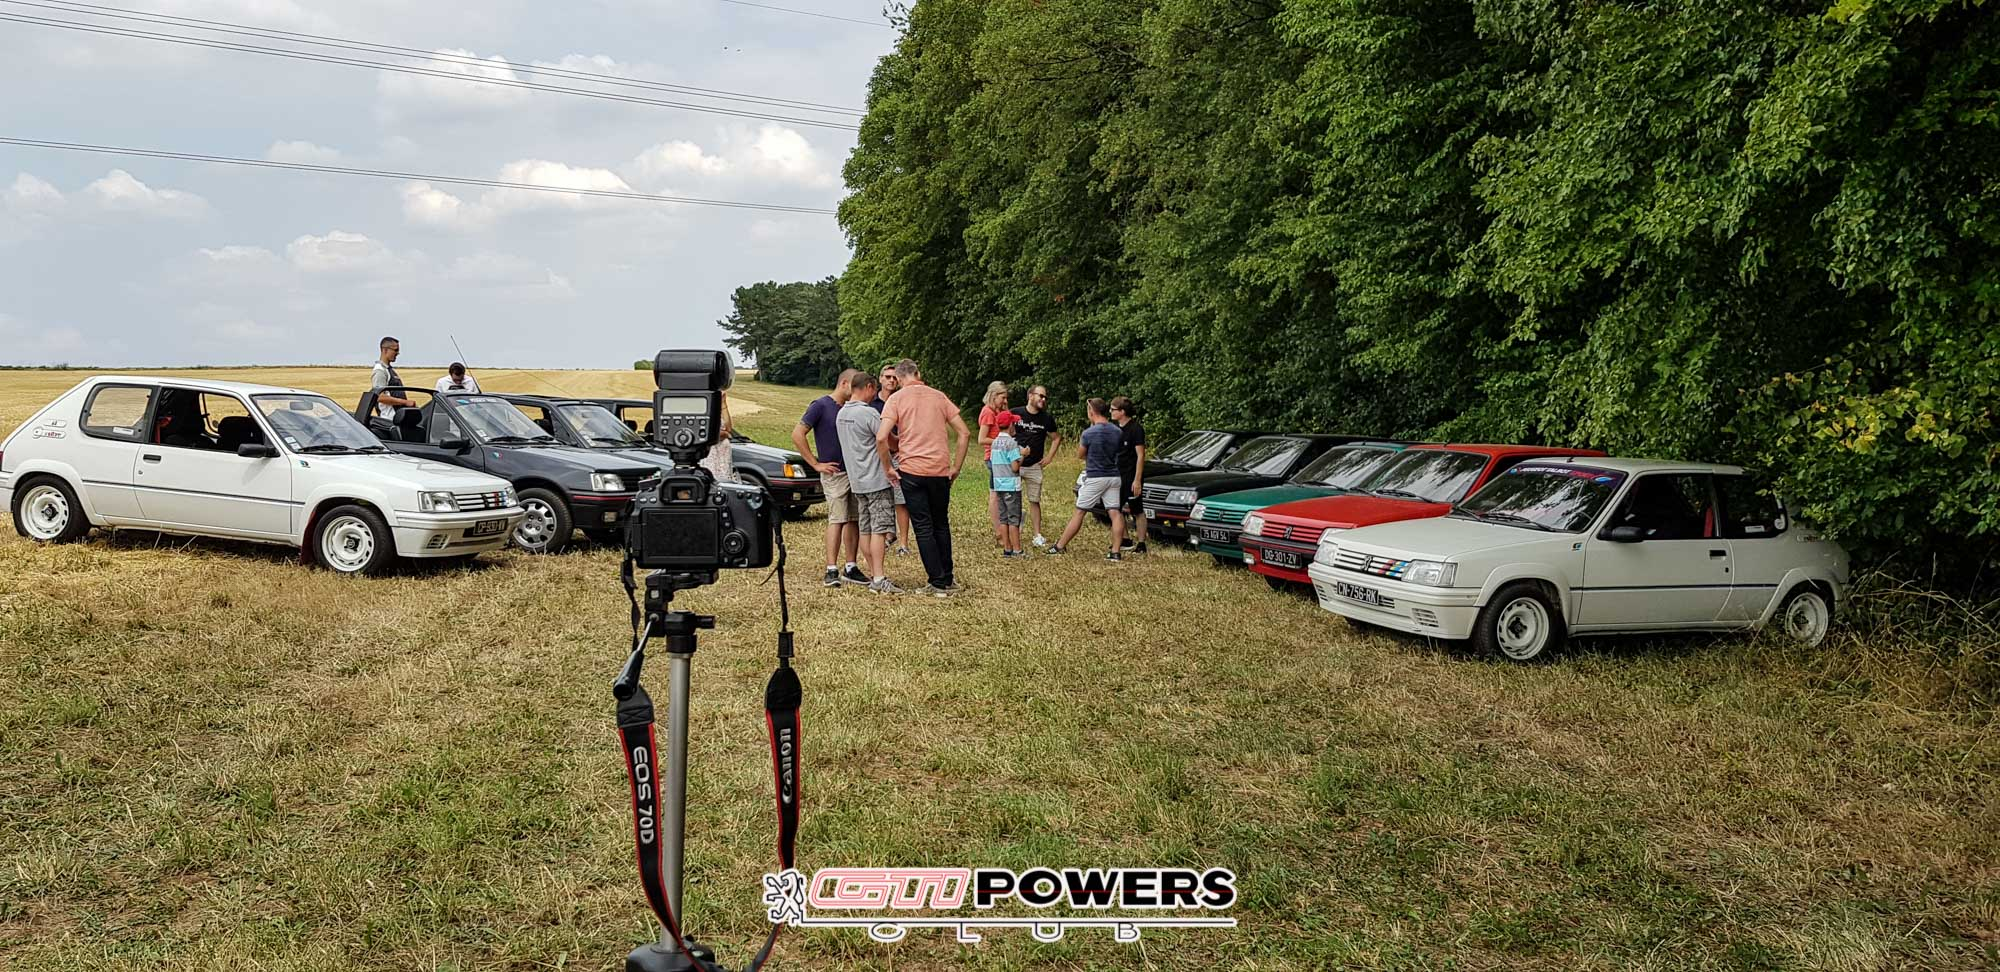 GTIPOWERS Day PAM - Dimanche 22 Juillet 2018 Gtipow55